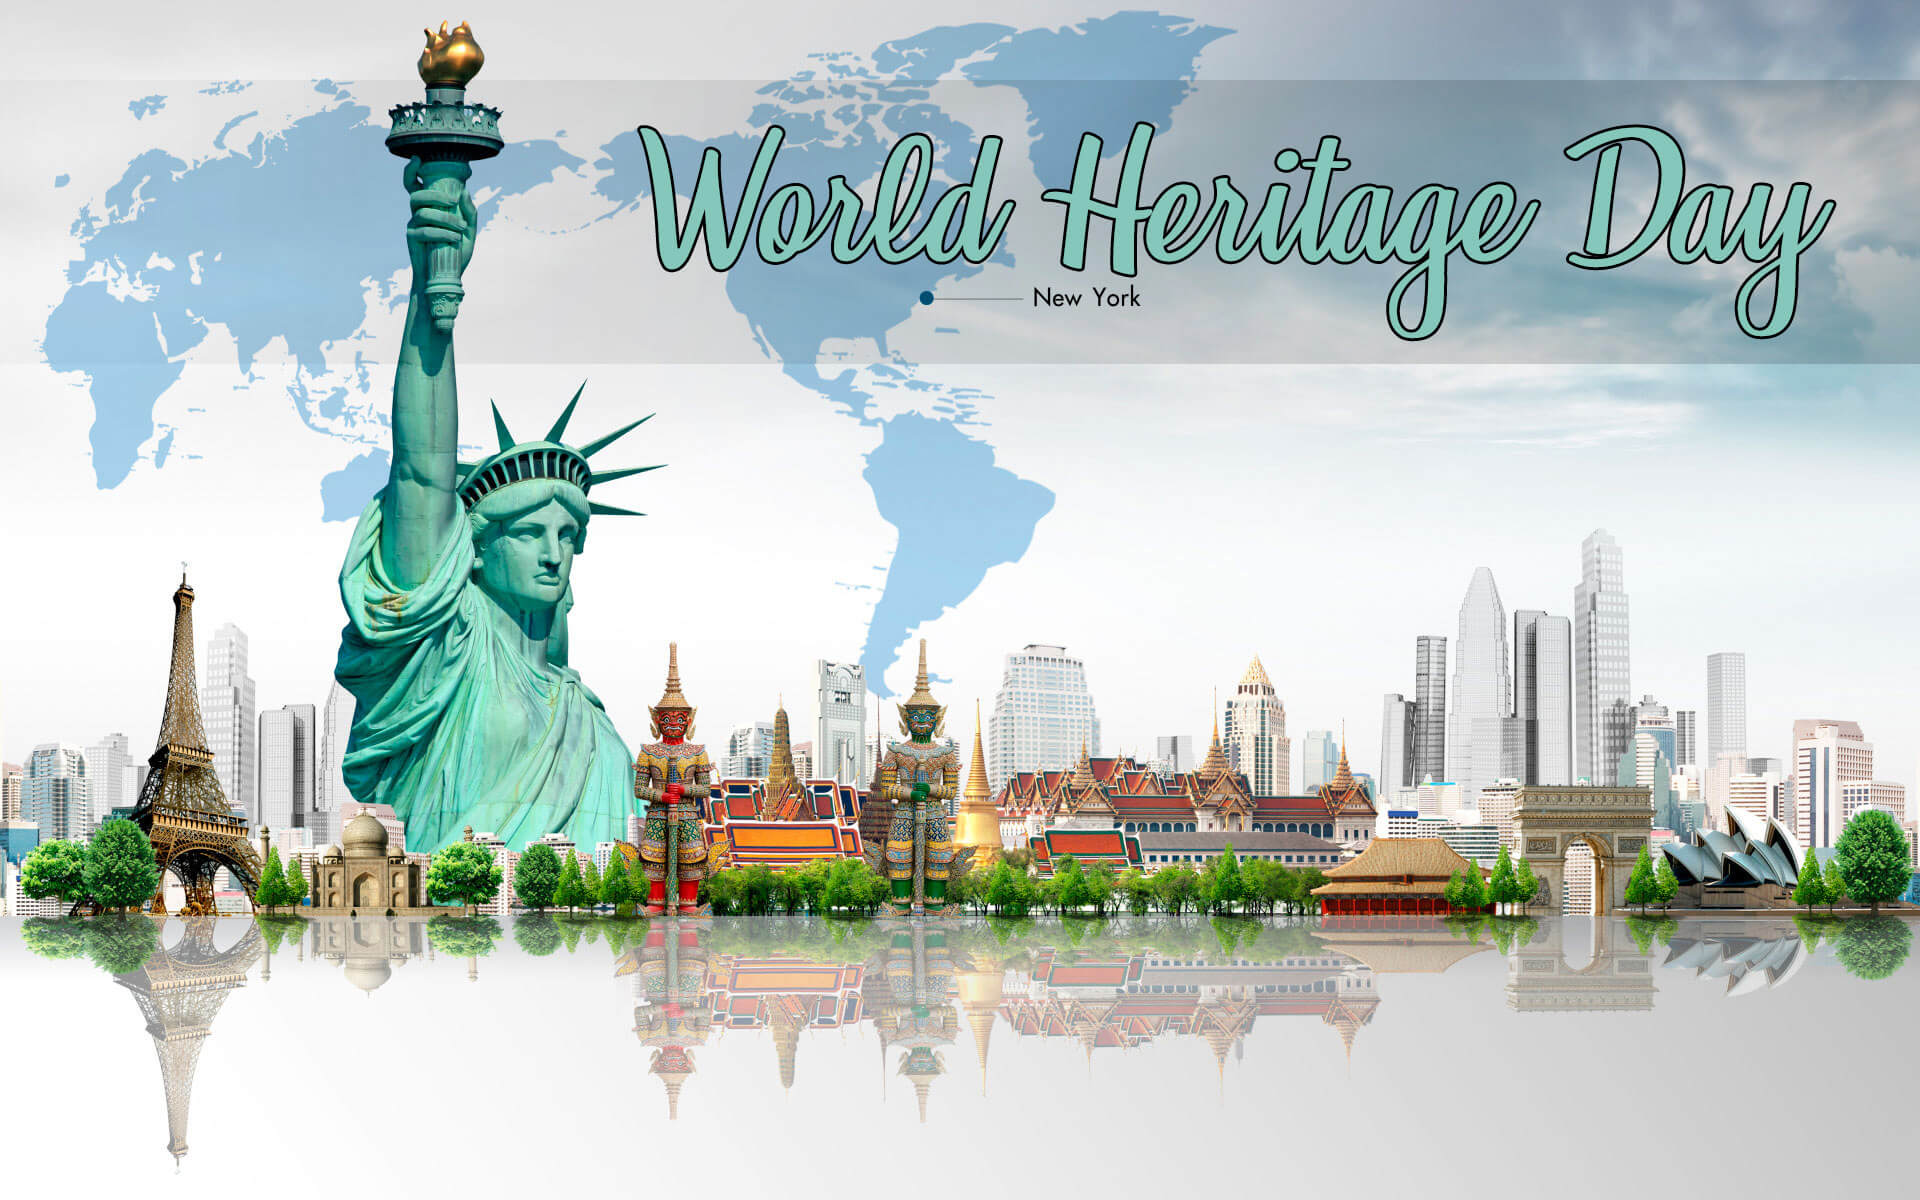 world heritage day monuments eiffel tower liberty of statue hd wallpaper